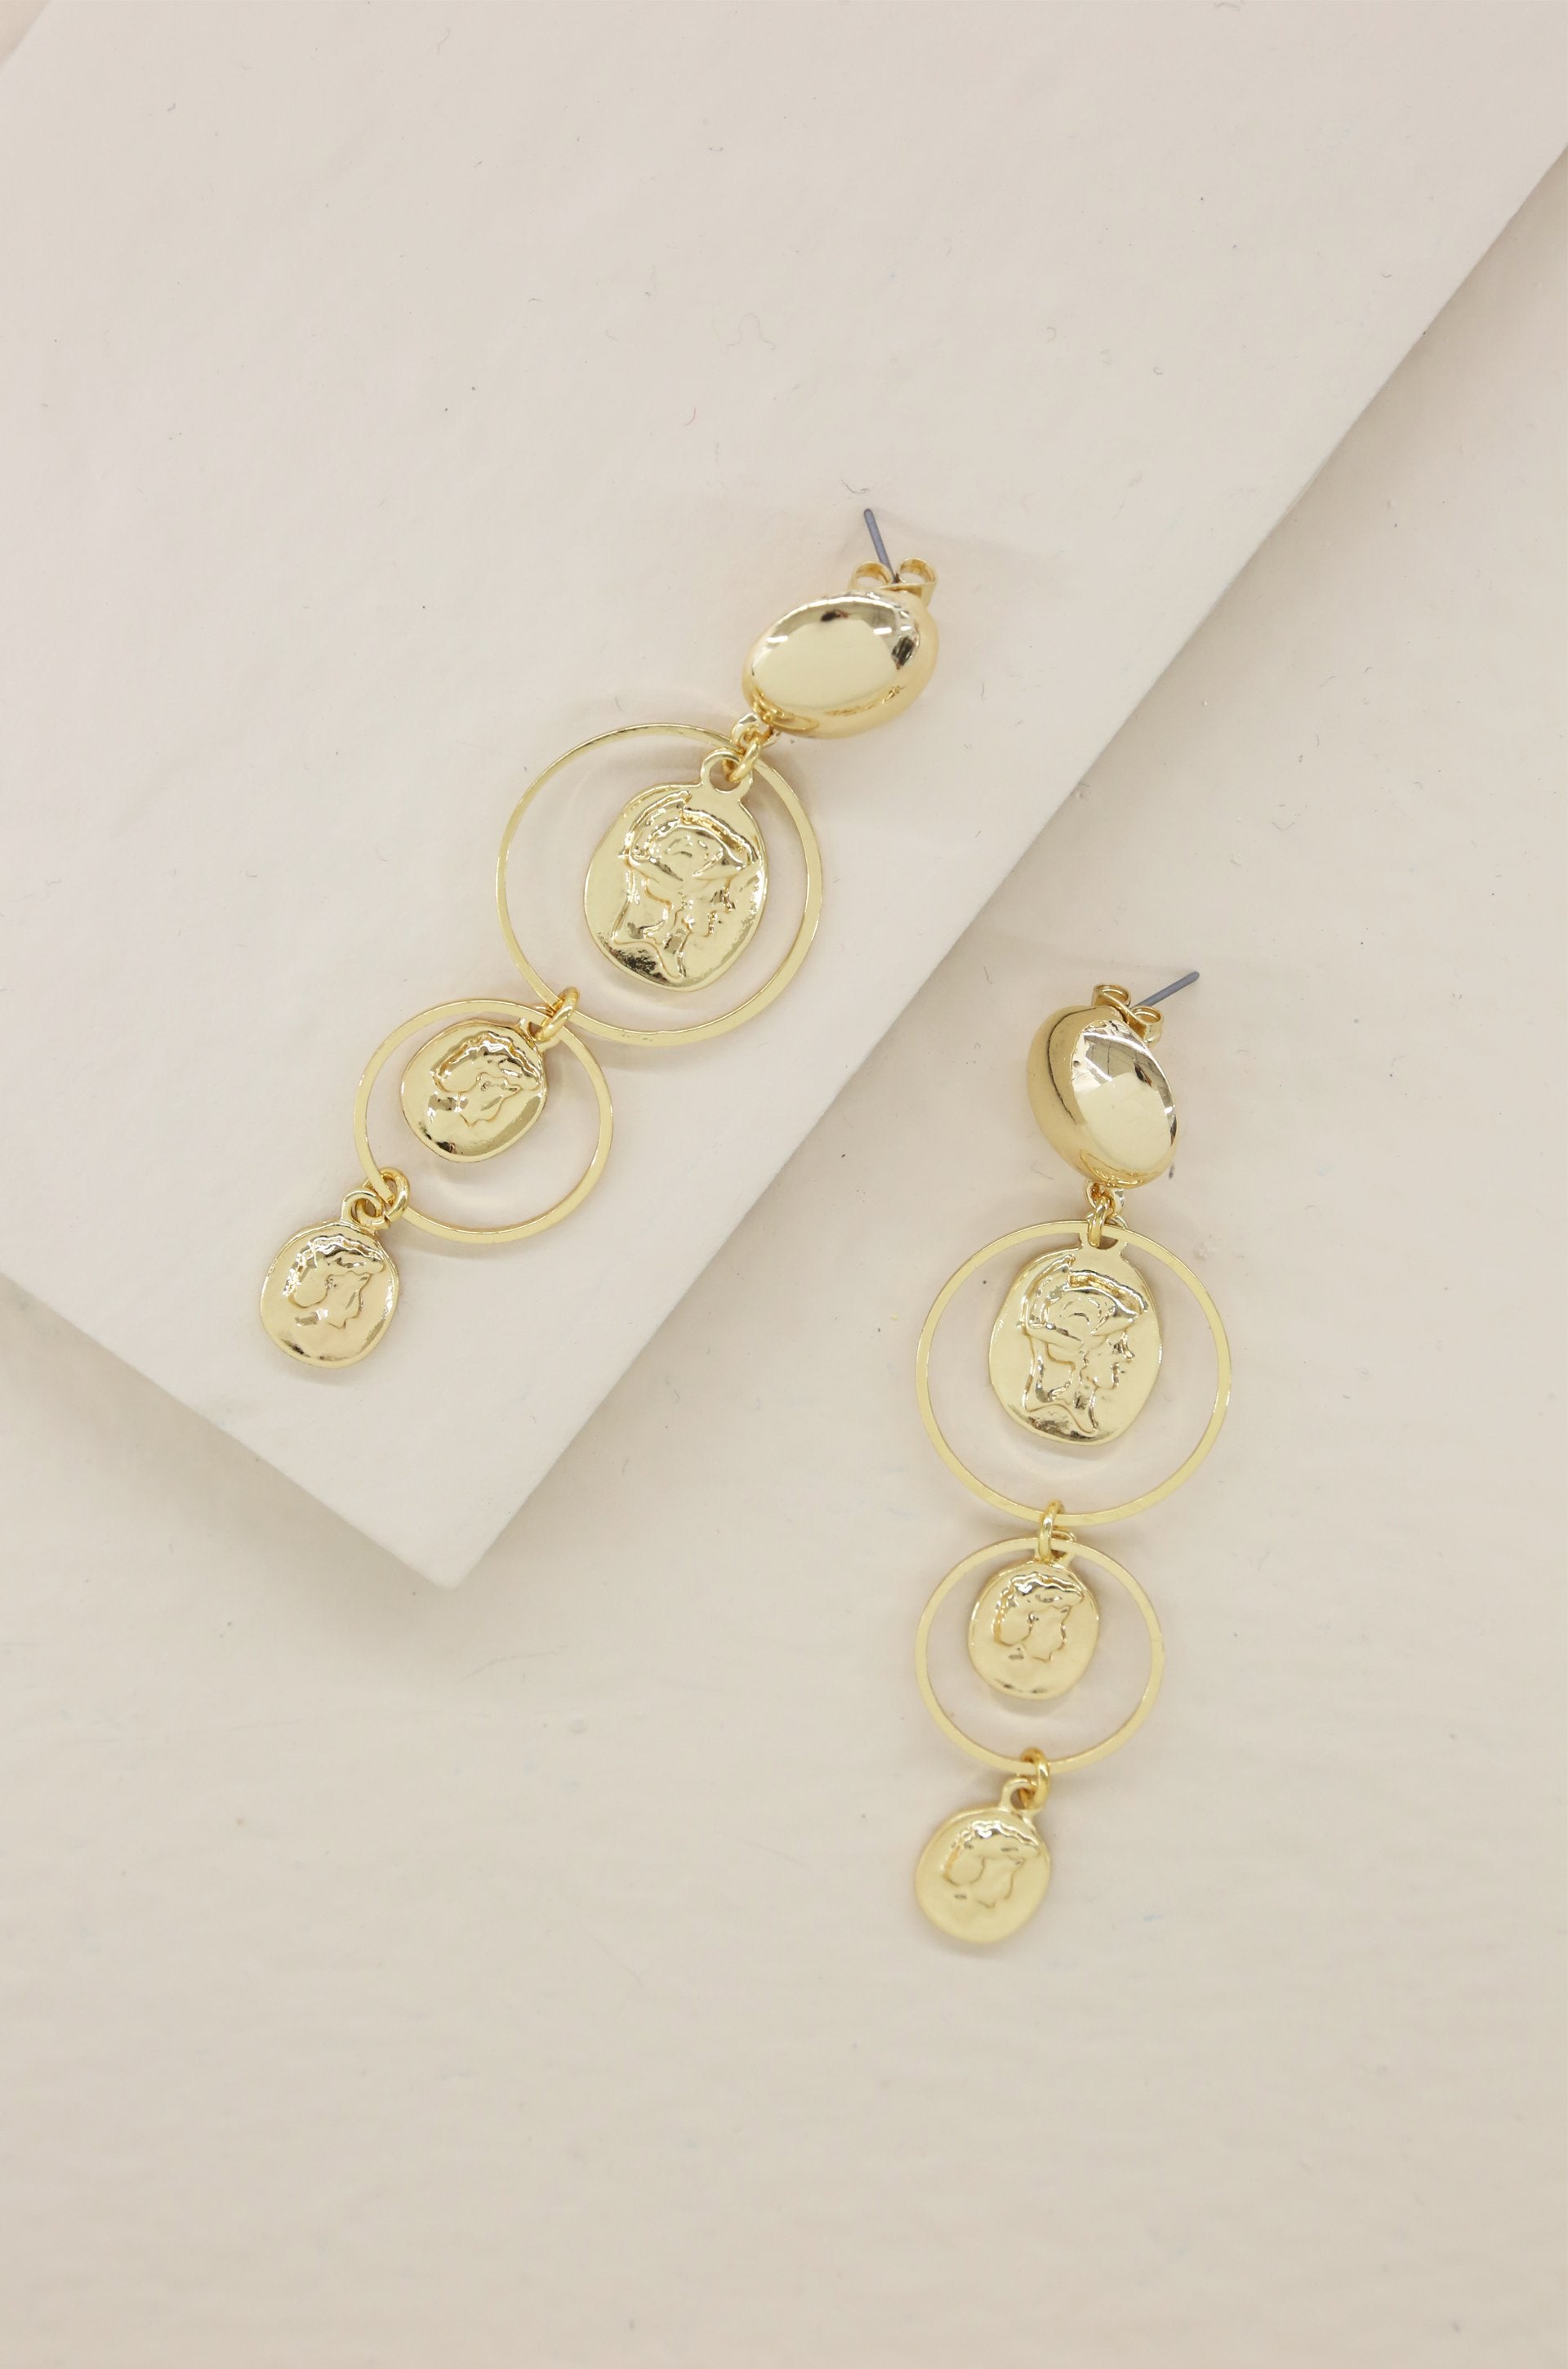 Gold Coins in Orbit Dangle 18k Gold Plated Earrings - Vanessa Stylez Boutique